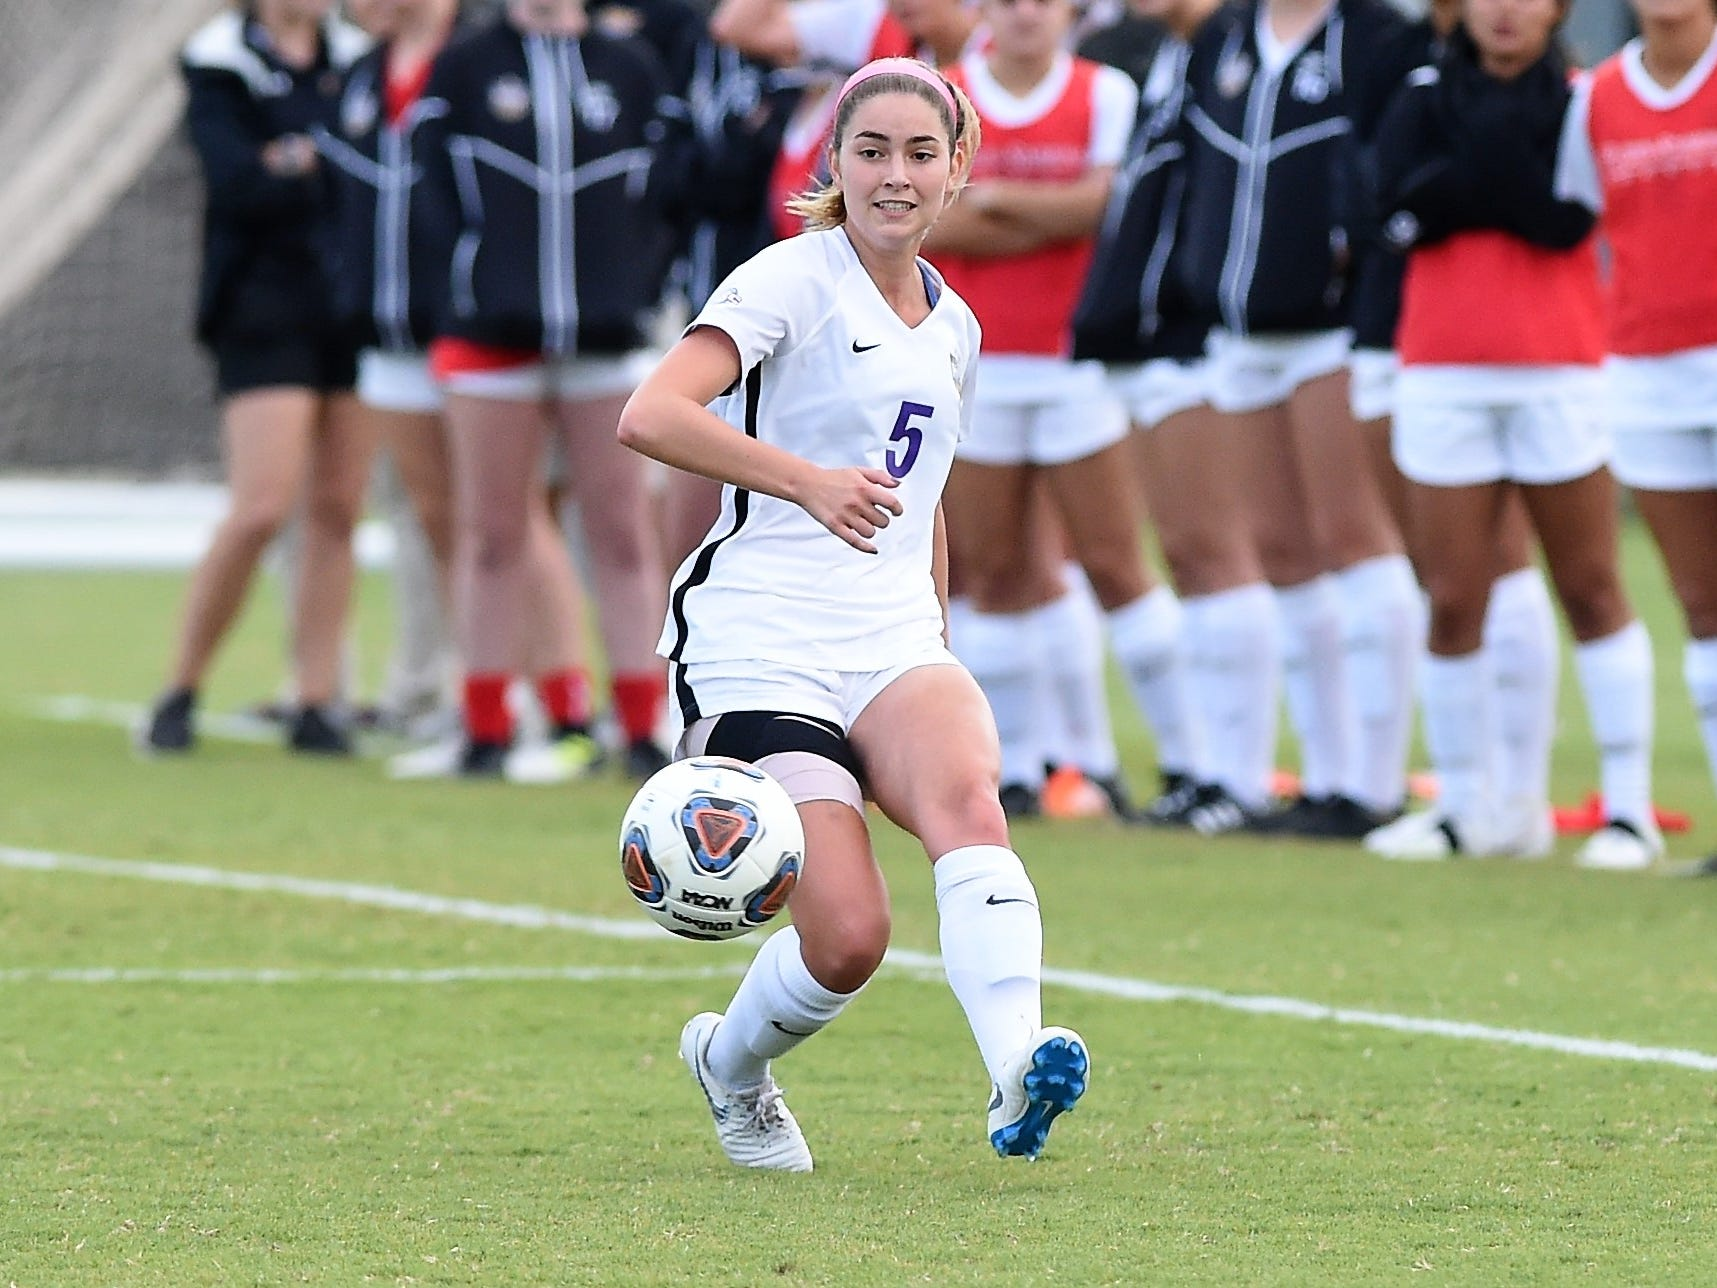 Hardin-Simmons midfielder Evan Pipkin (5) makes a pass against Howard Payne at the HSU Soccer Complex on Thursday, Oct. 11, 2018. The Cowgirls won 4-1.